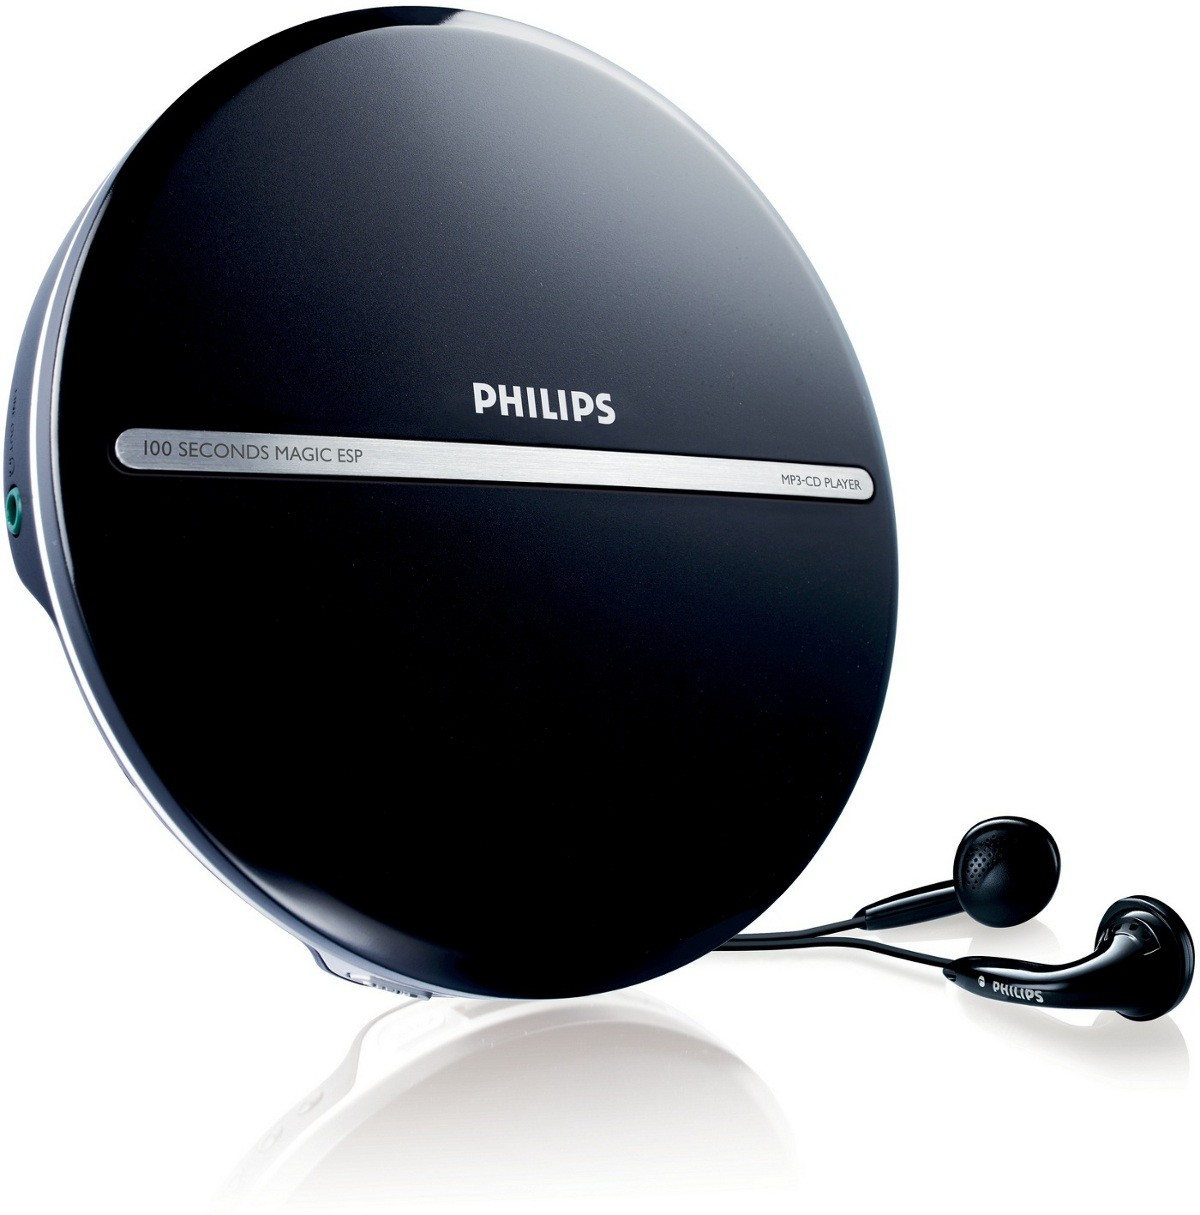 PHILIPS - EXP 2546/12